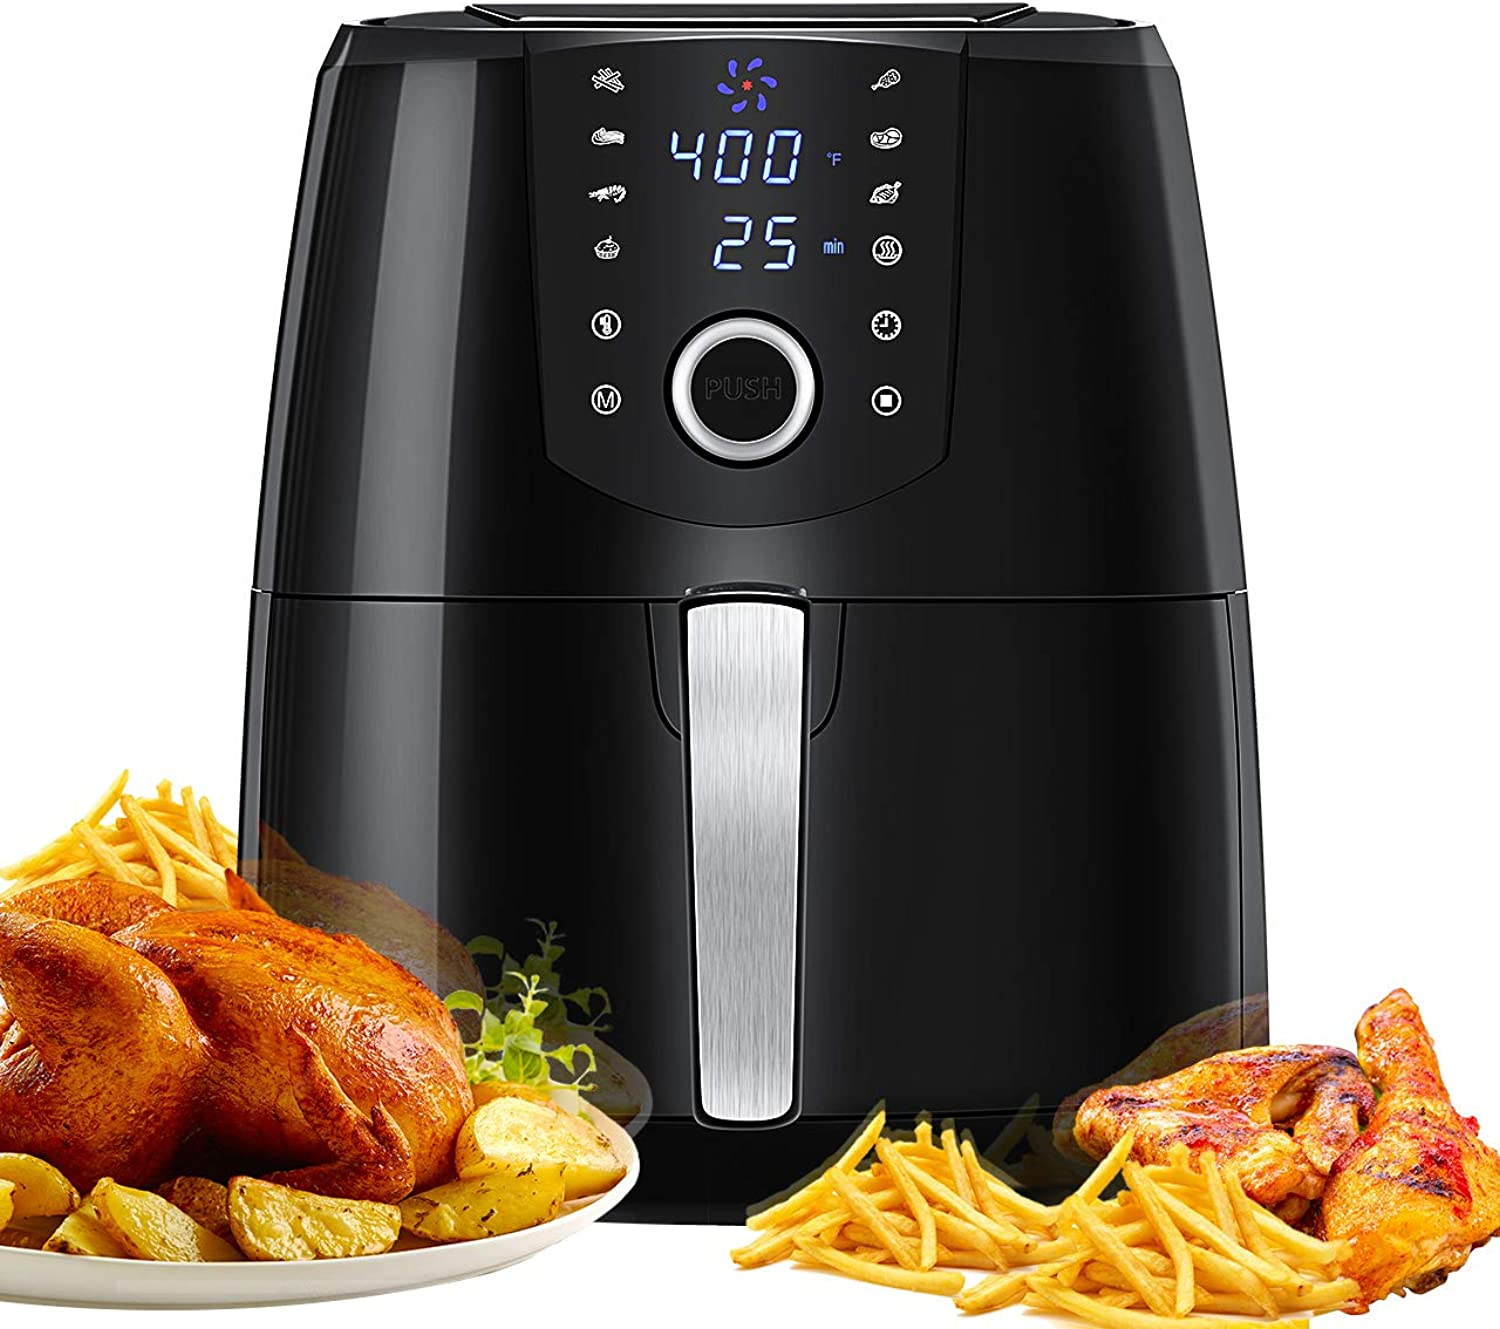 Upgraded OMORC Air Fryer, 3.8QT Digital Oilless Air Fryer (w Cookbook), Hot Air Fryer Oven w Quick Knob & Touch Screen, 8-15 Presets, Keep Warm, Detachable Non-Stick Dishwasher Safe Basket, 2-Year Warranty, 1400W